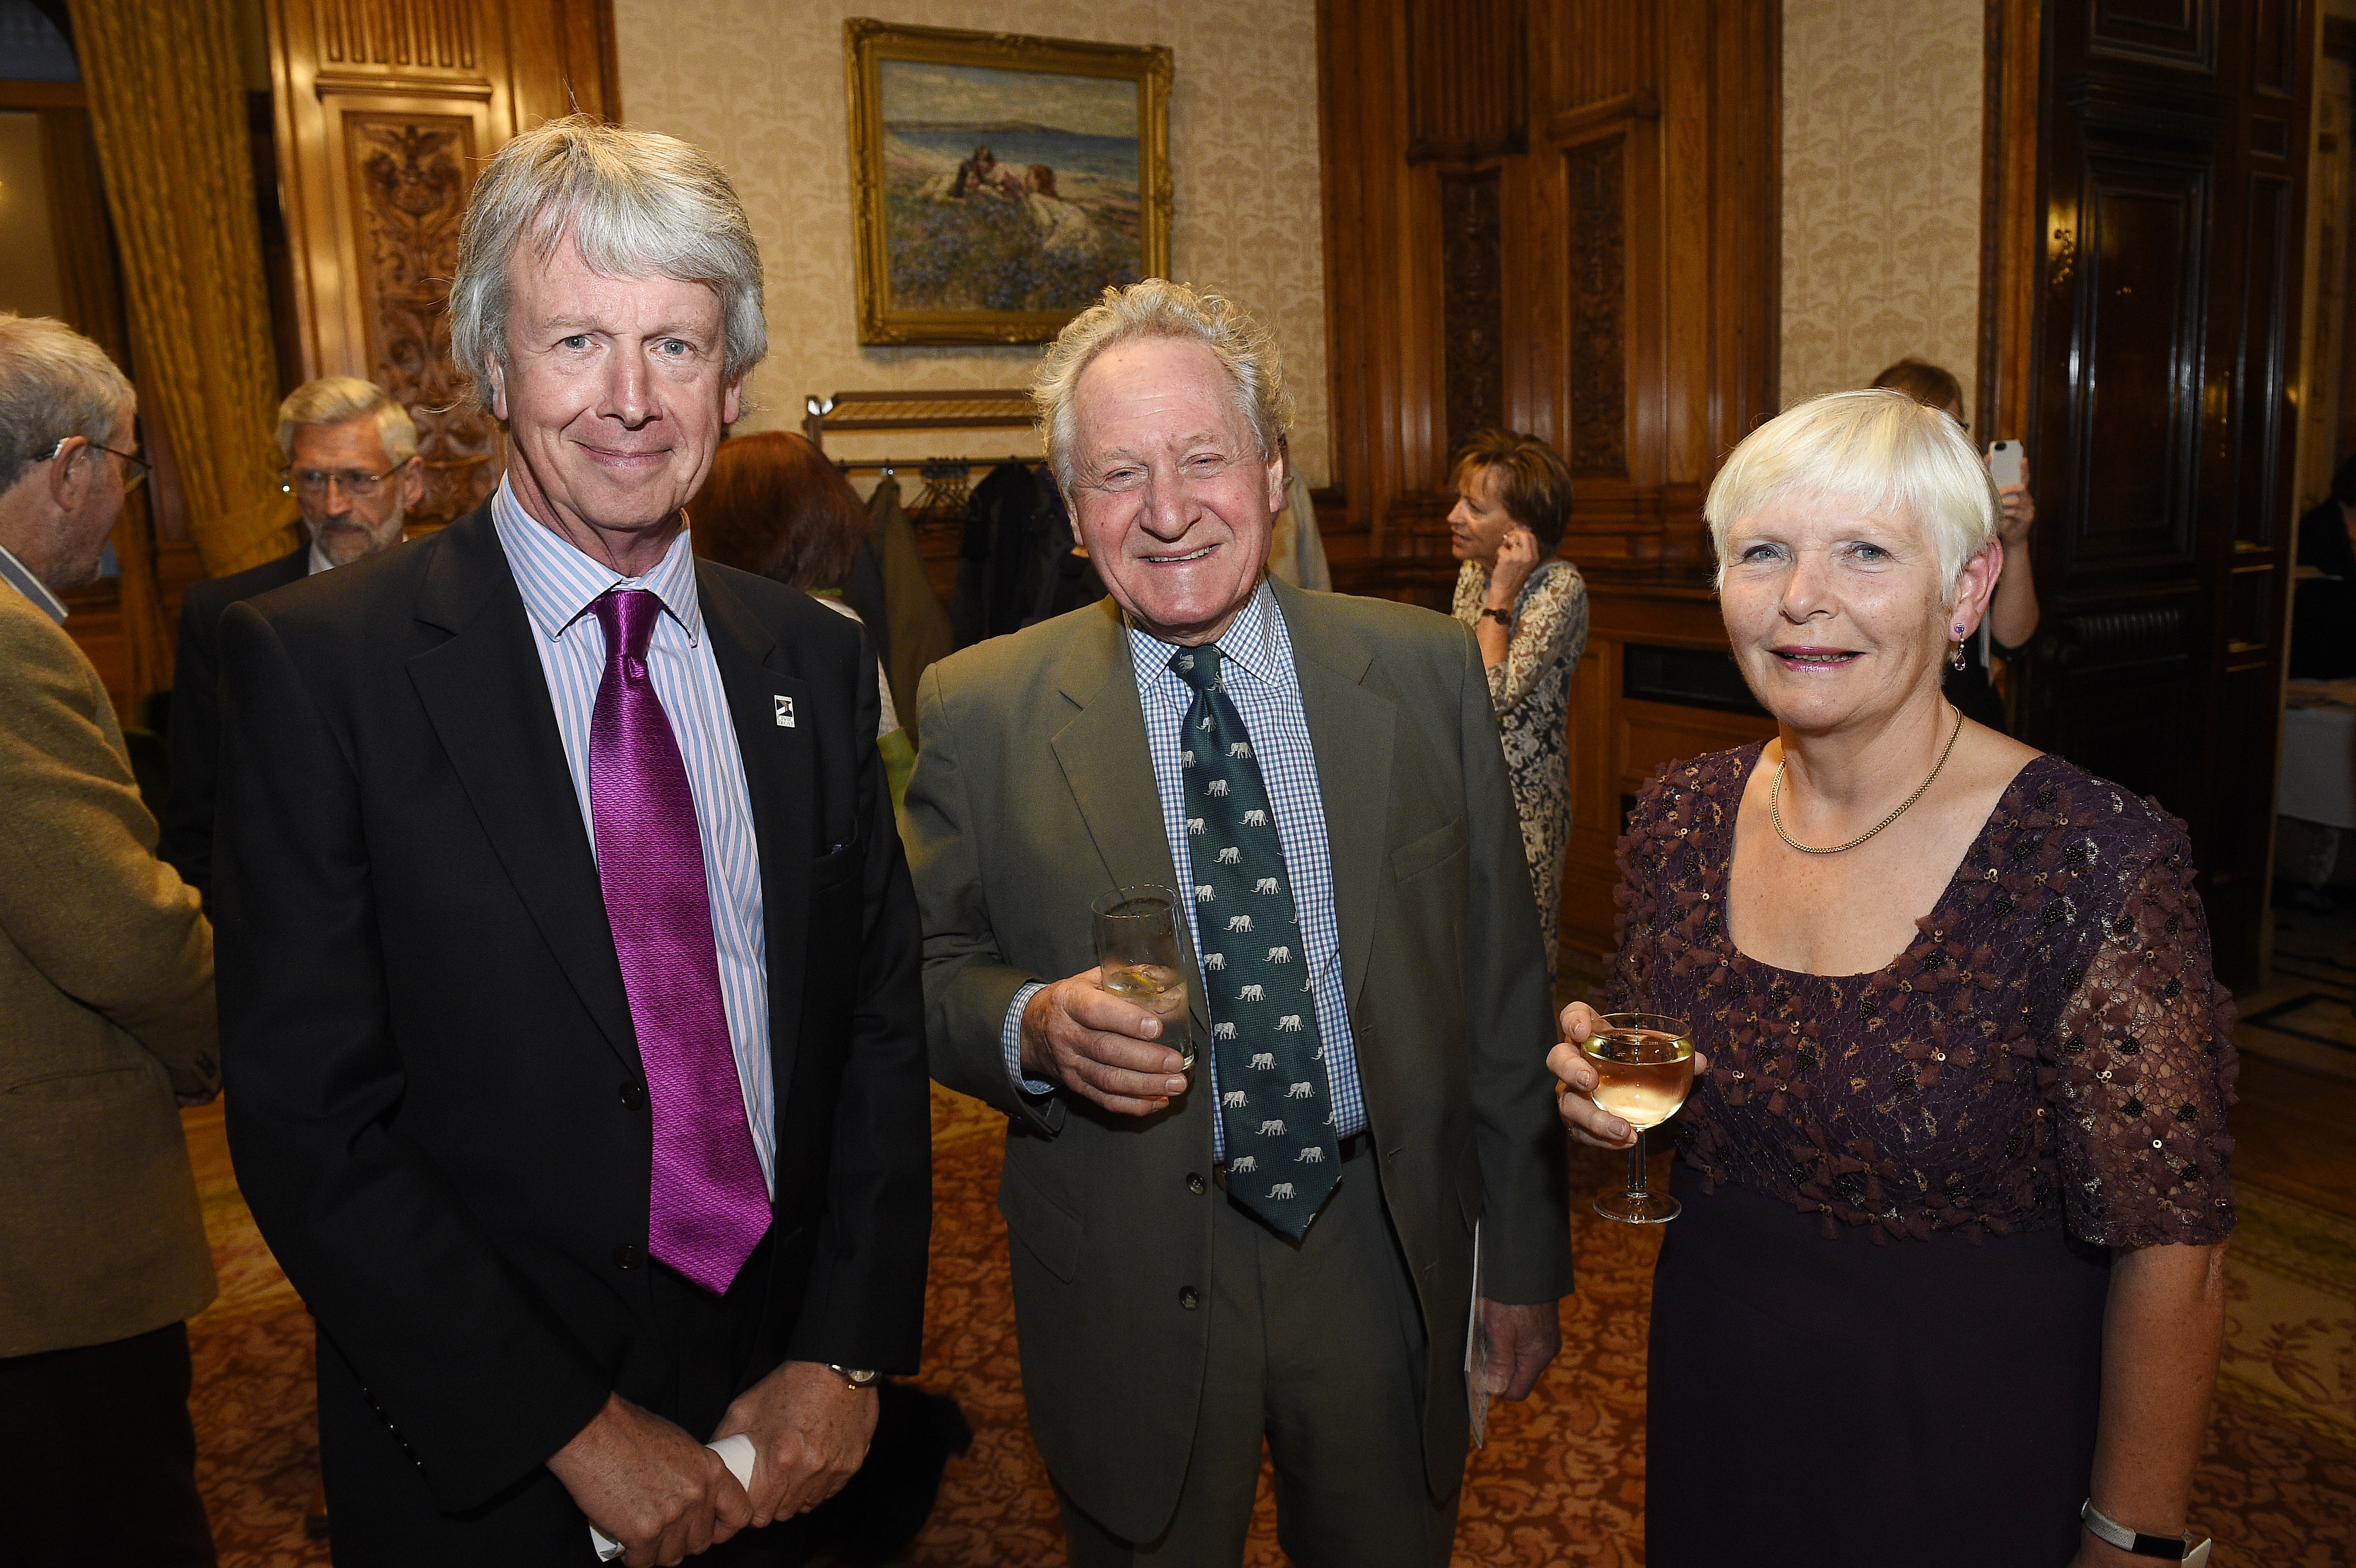 Jane Mayo at the Scottish Heritage Angel Awards, at the City Chambers in Glasgow with her husband David (centre) and Colin McLean (left) of Scottish Civic Trust.